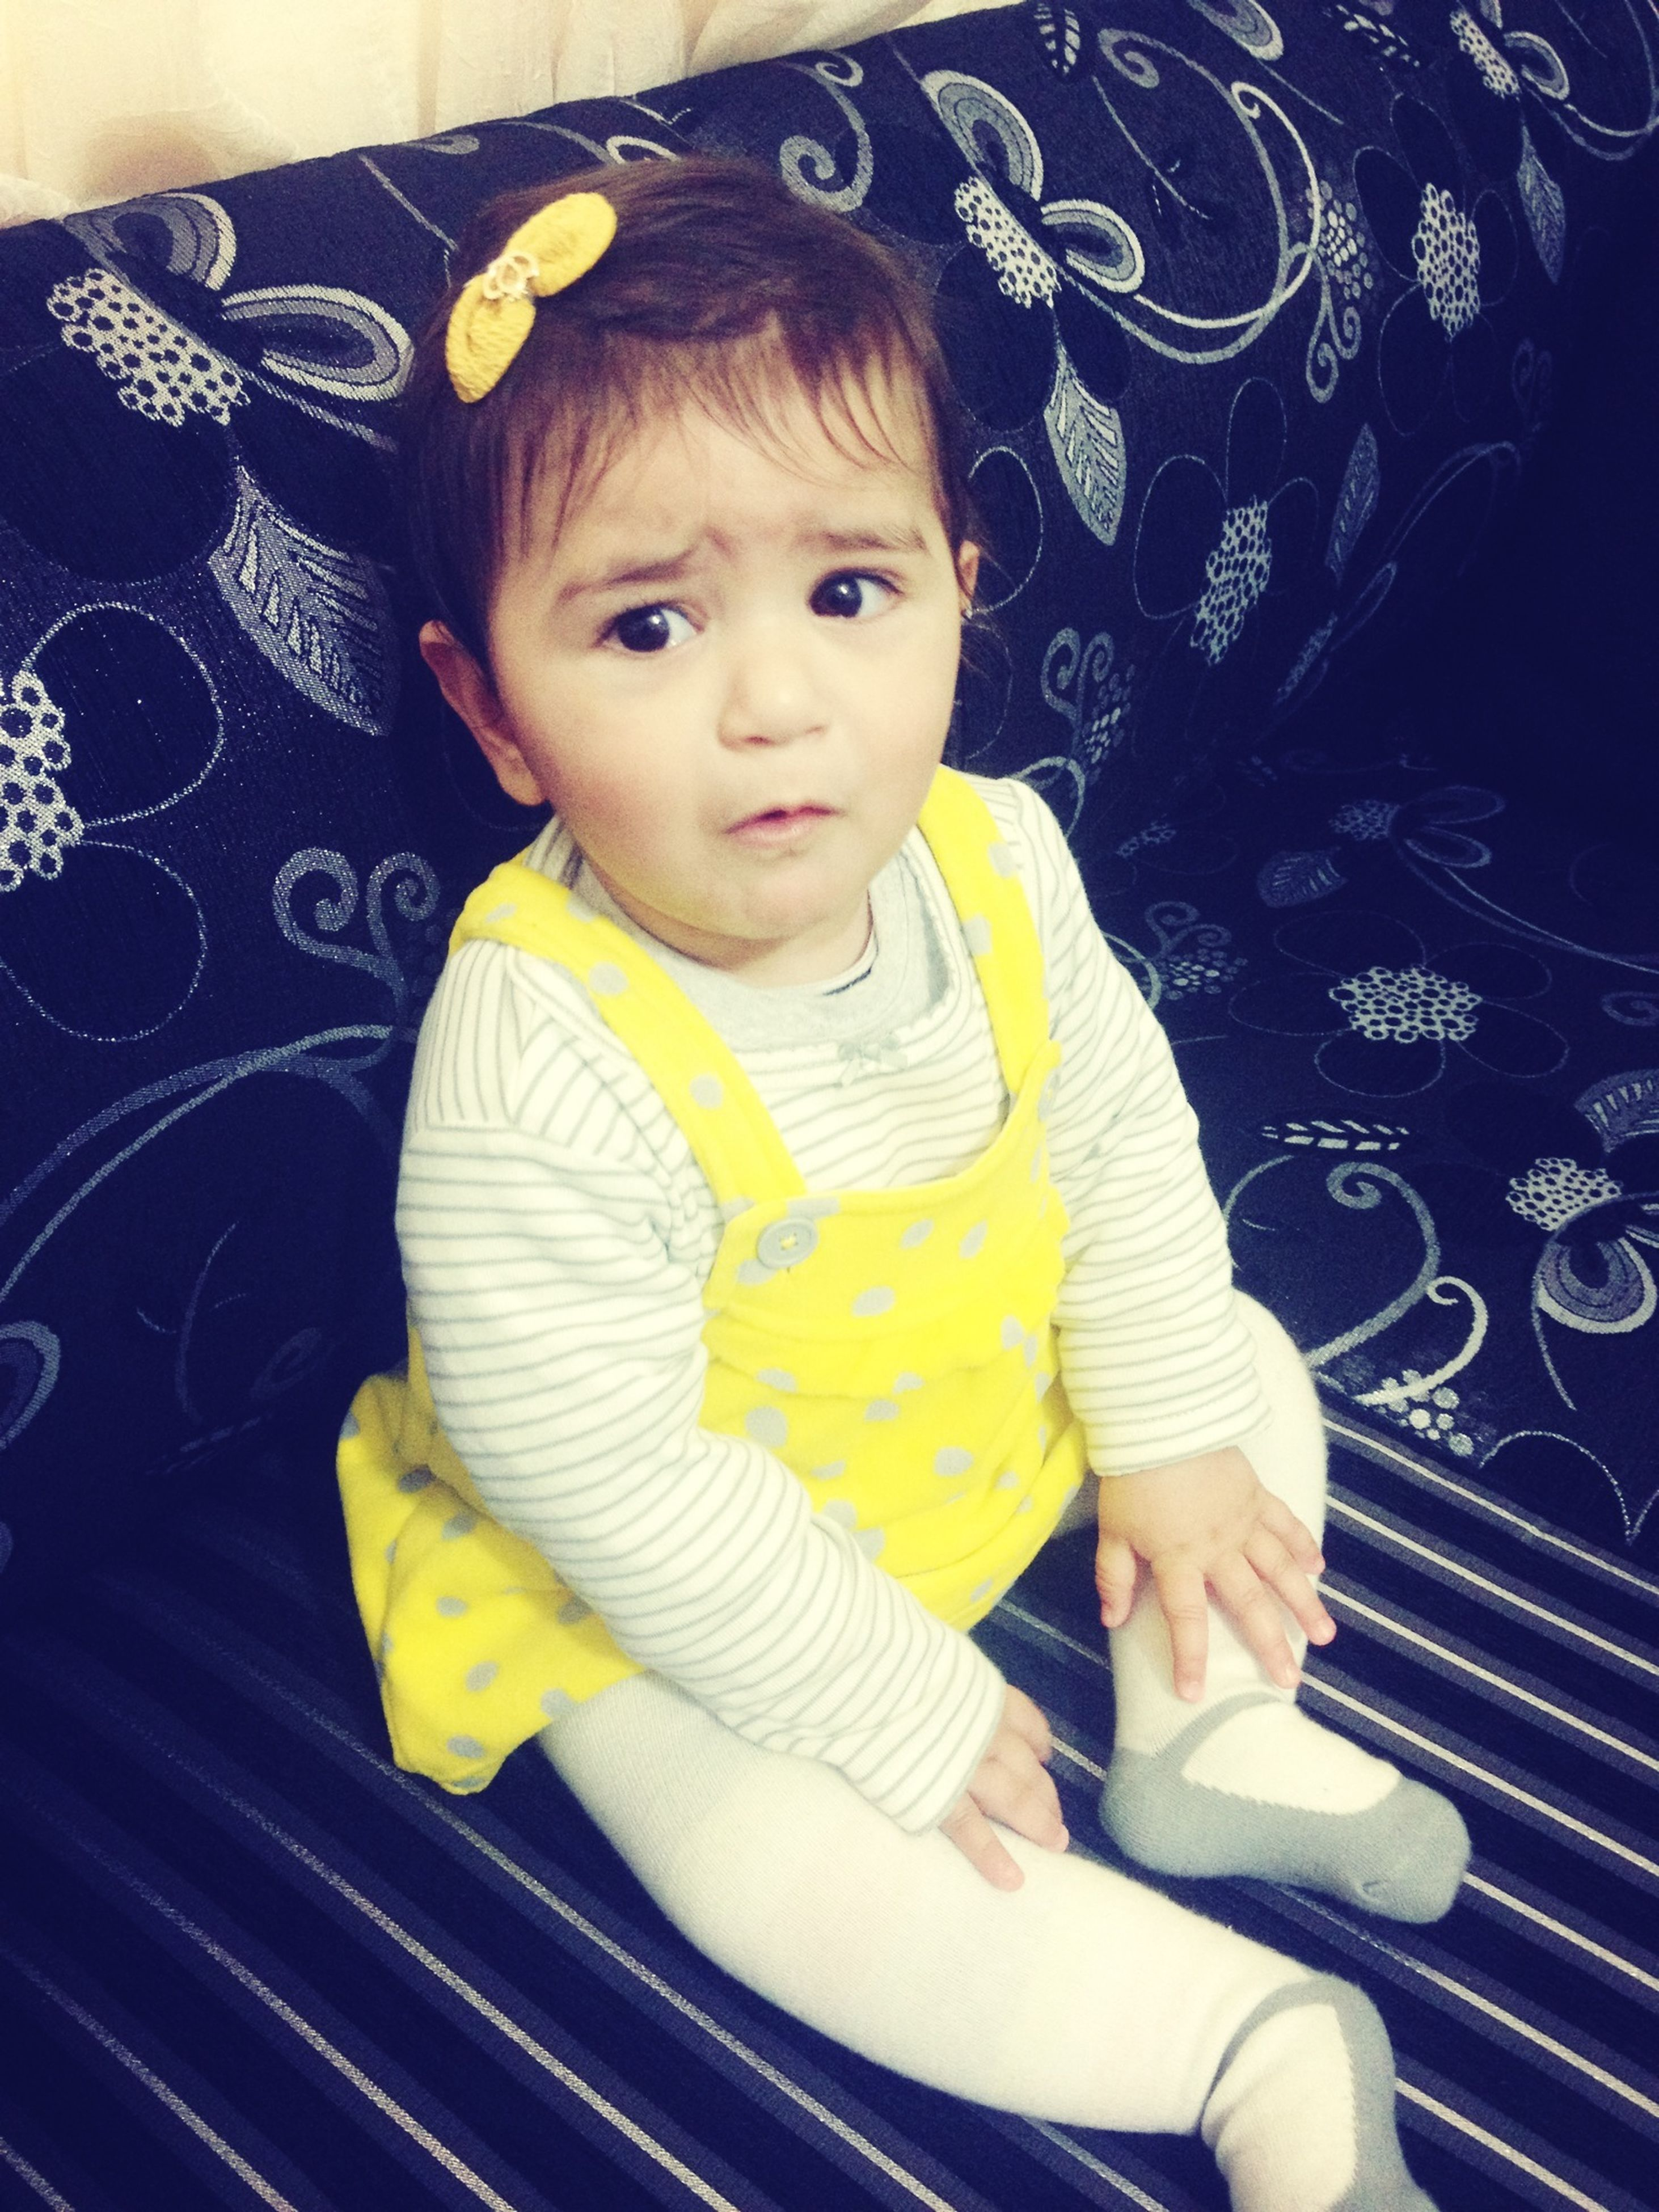 childhood, elementary age, innocence, cute, person, boys, toddler, girls, indoors, portrait, babyhood, baby, casual clothing, looking at camera, baby clothing, front view, lifestyles, preschool age